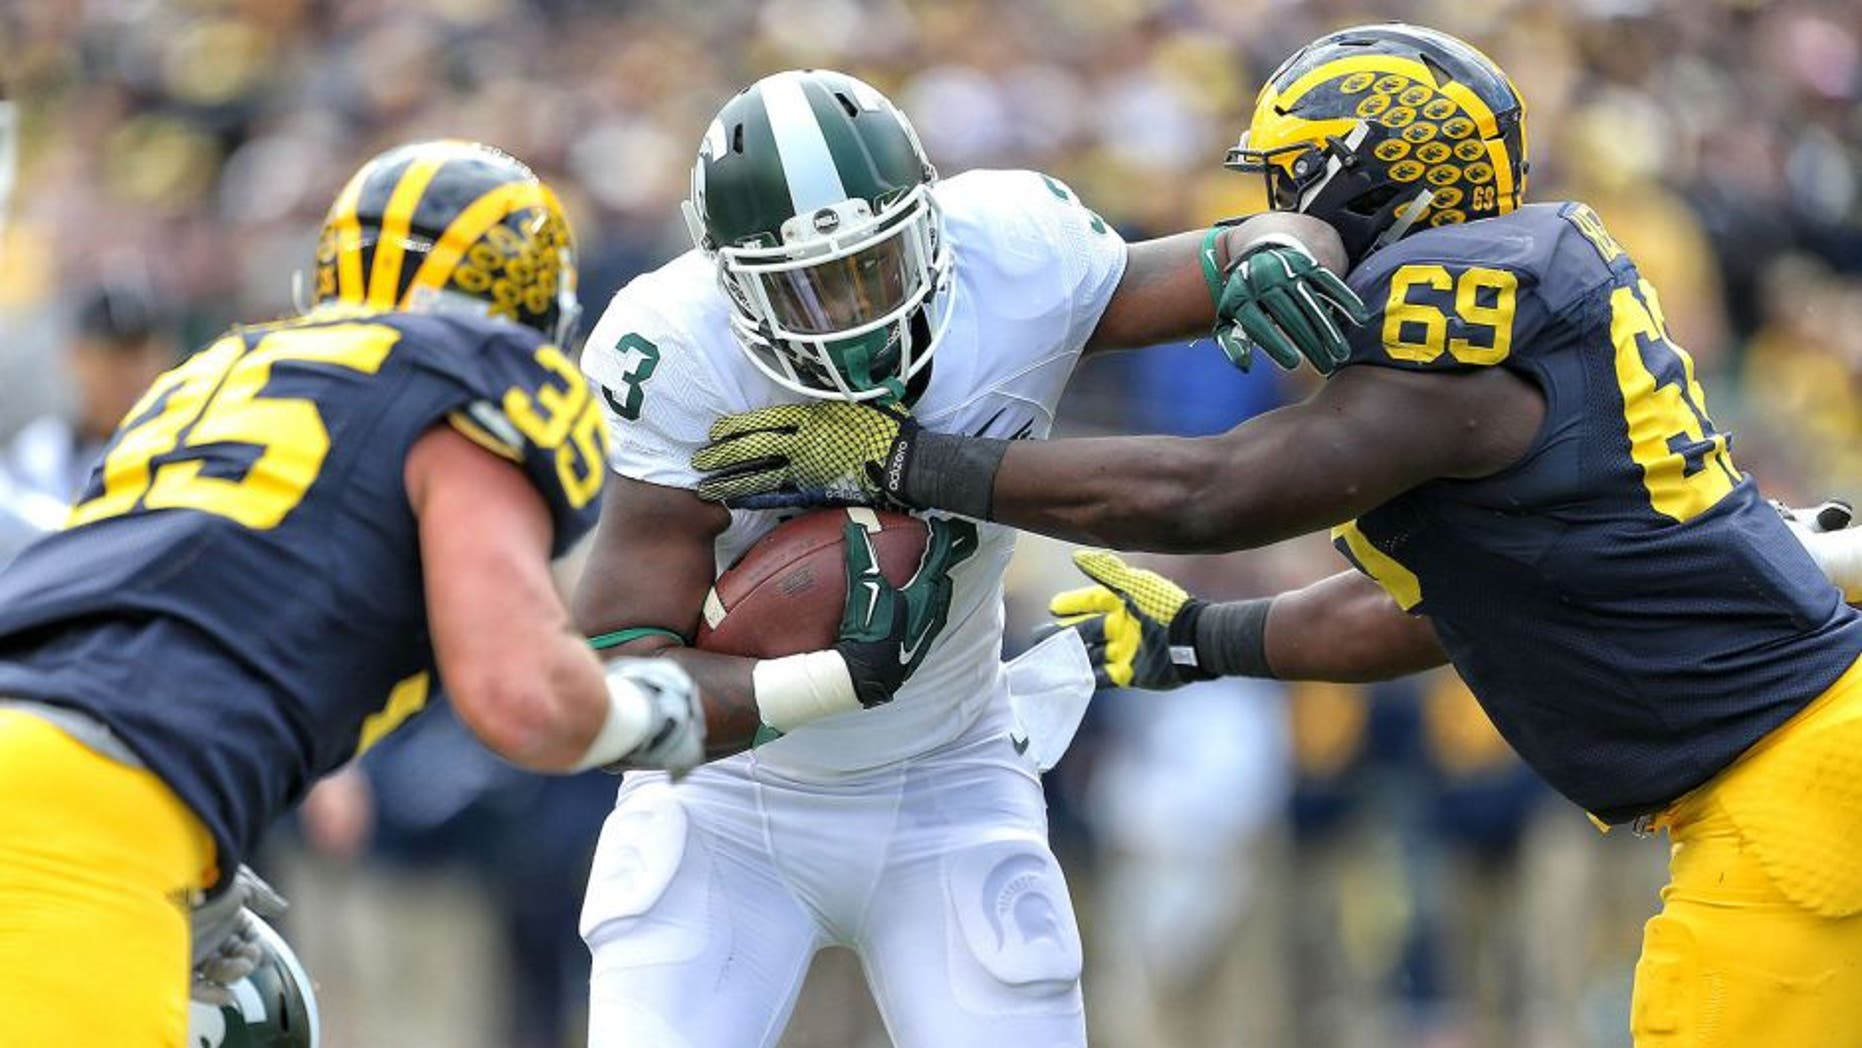 Oct 17, 2015; Ann Arbor, MI, USA; Michigan State Spartans running back LJ Scott (3) carries the ball between Michigan Wolverines linebacker Joe Bolden (35) and Michigan Wolverines defensive tackle Willie Henry (69) during the 1st quarter of a game at Michigan Stadium. Mandatory Credit: Mike Carter-USA TODAY Sports